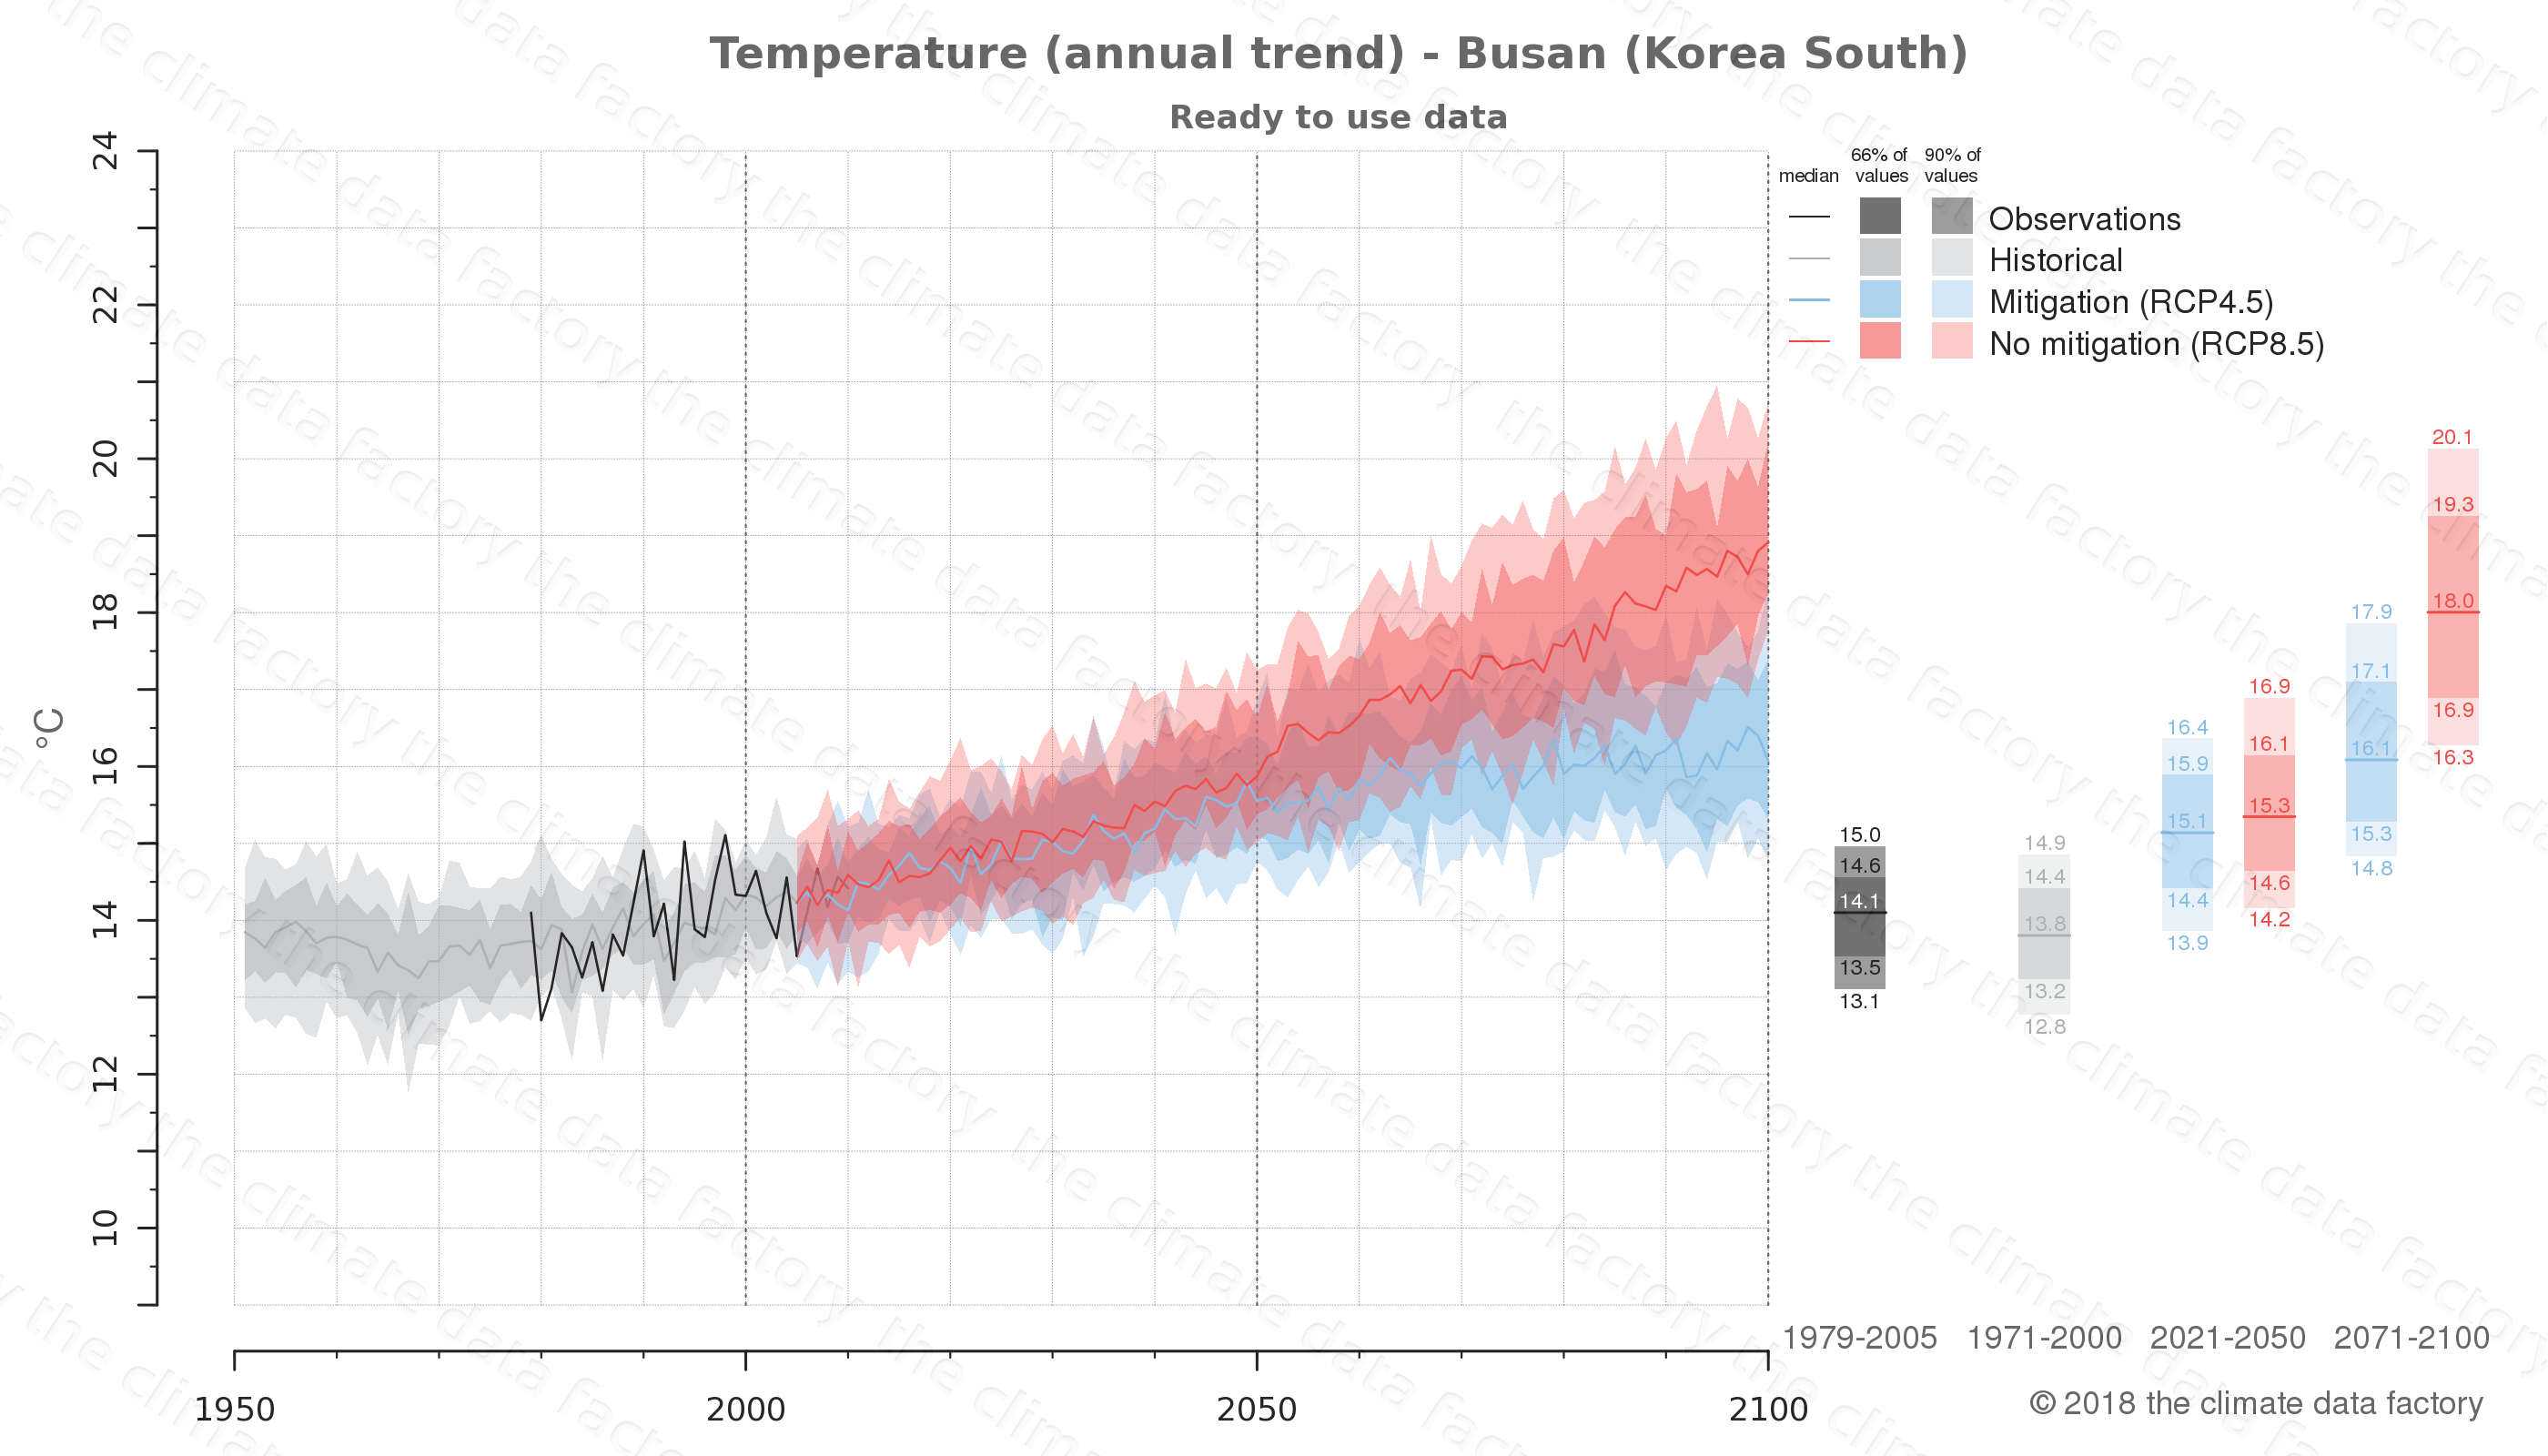 climate change data policy adaptation climate graph city data temperature busan south korea